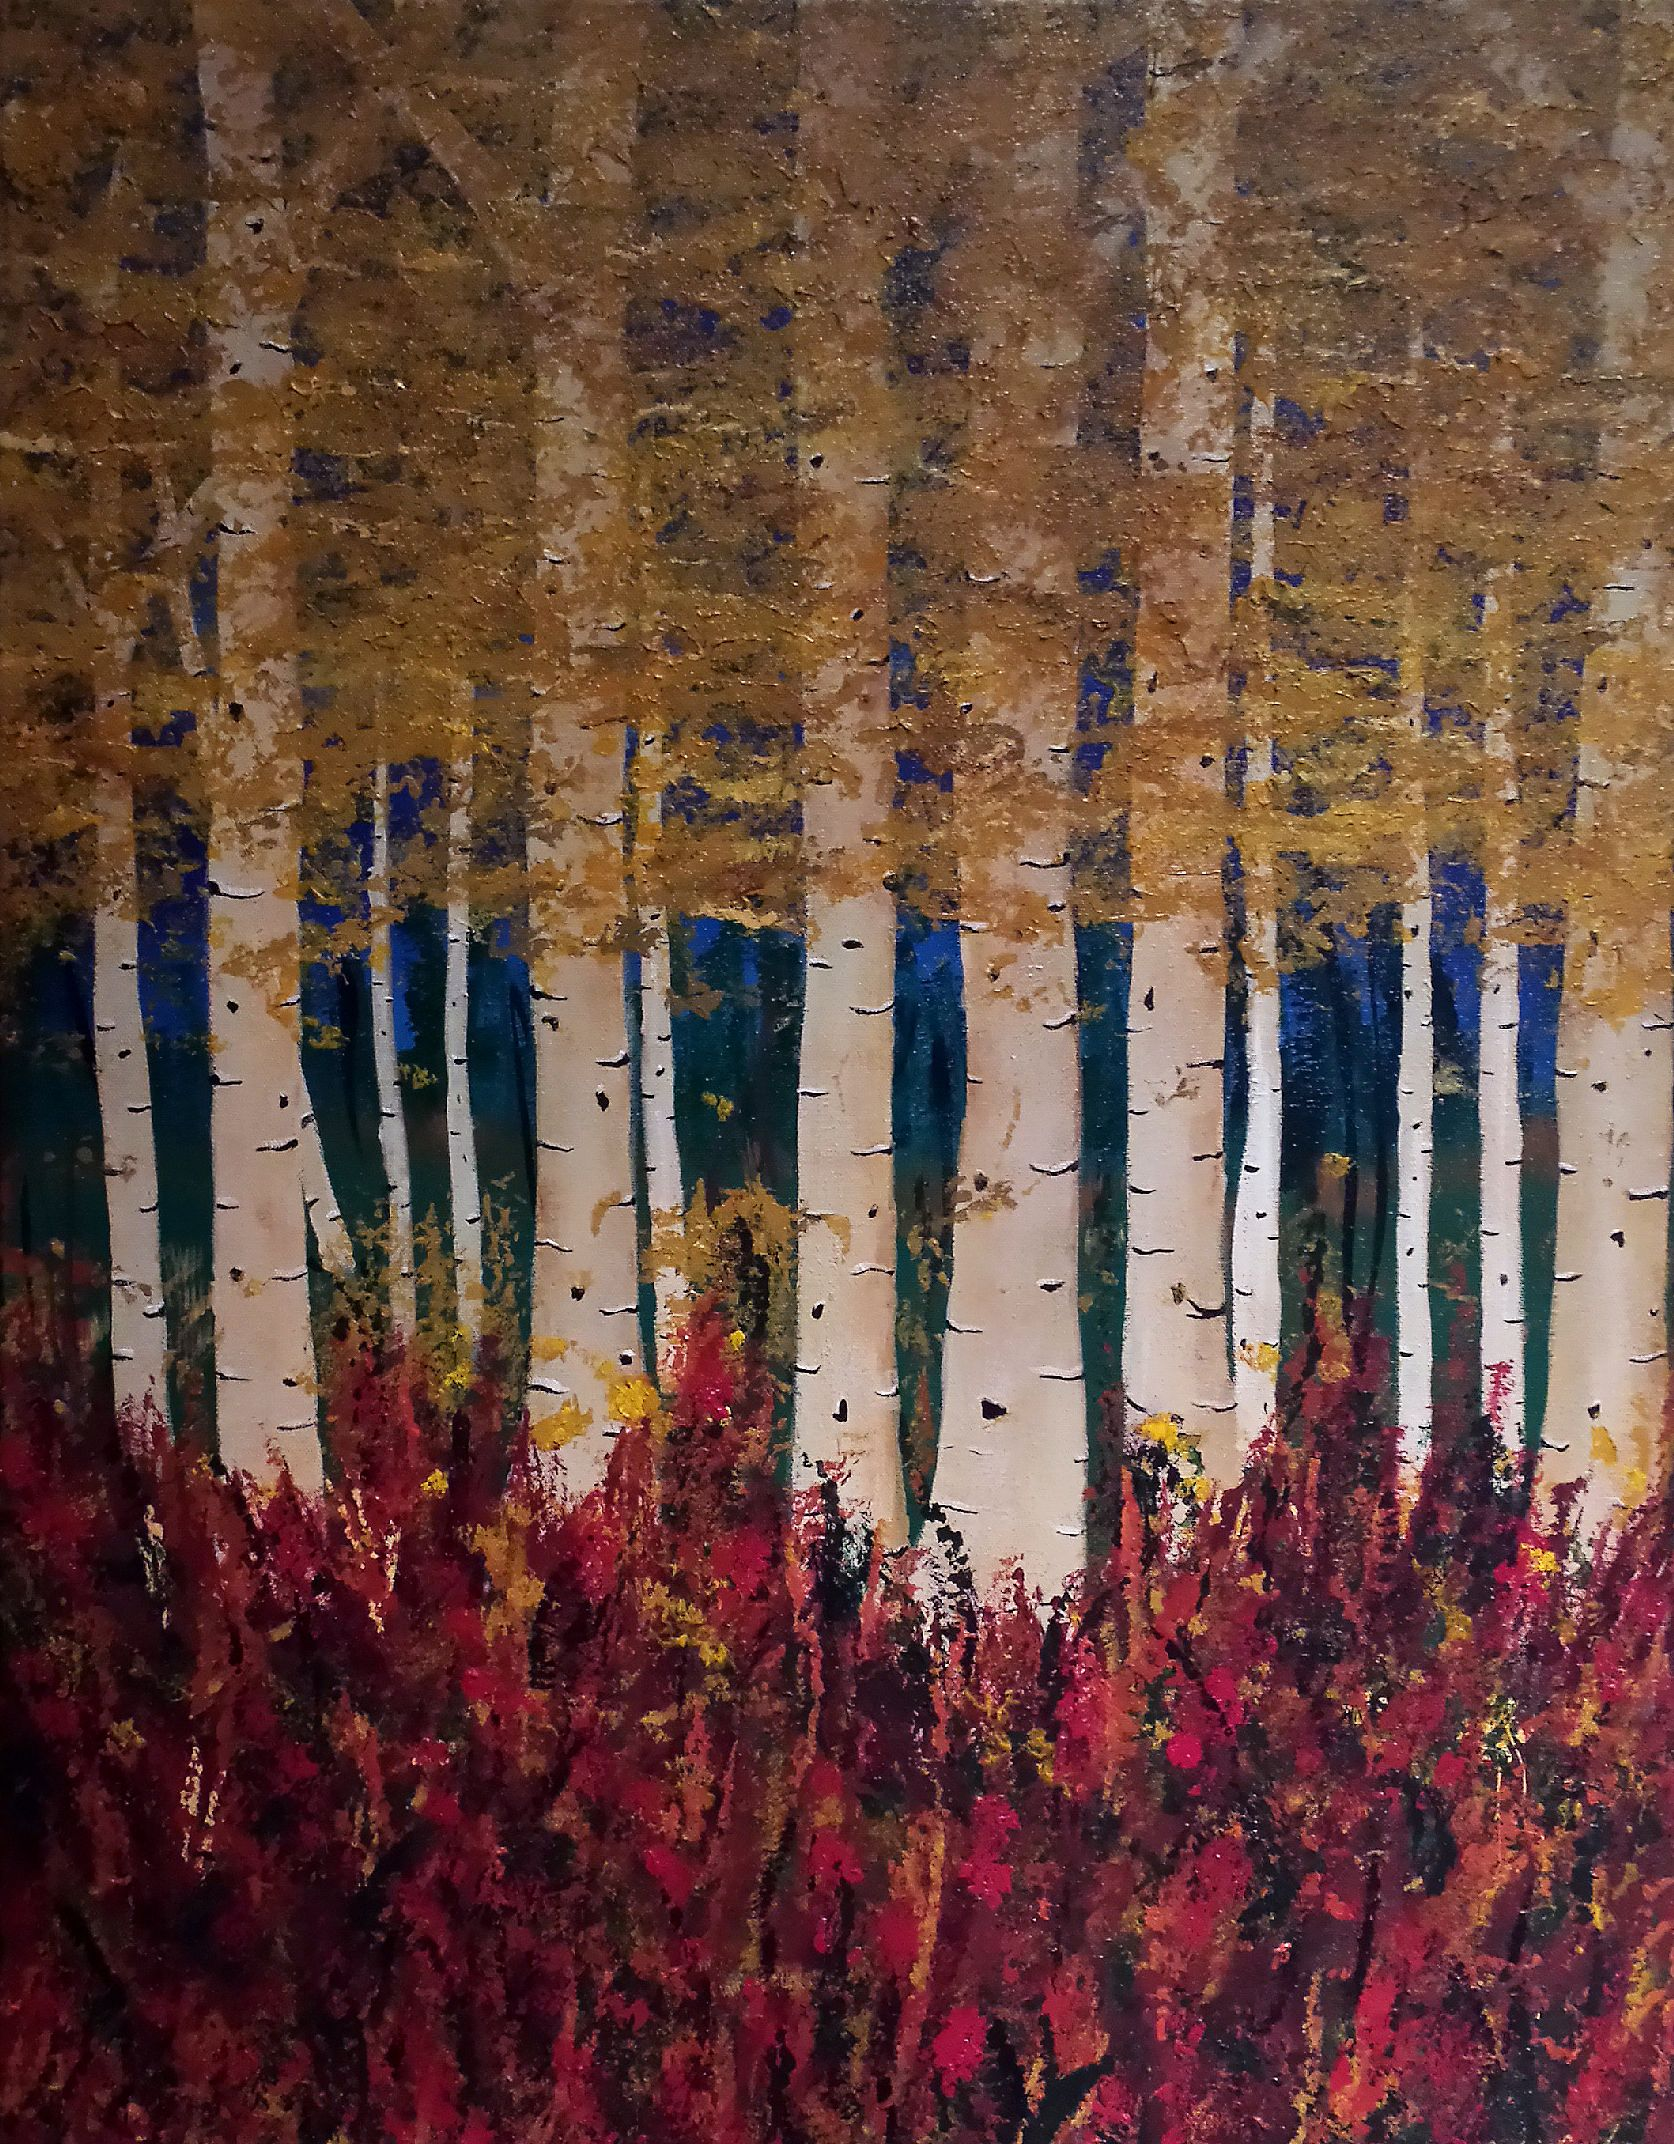 Lake Metroparks spring art show #ExpressionsofNature features local artist Julie Cook. Show is on display through May 17. FREE admission.